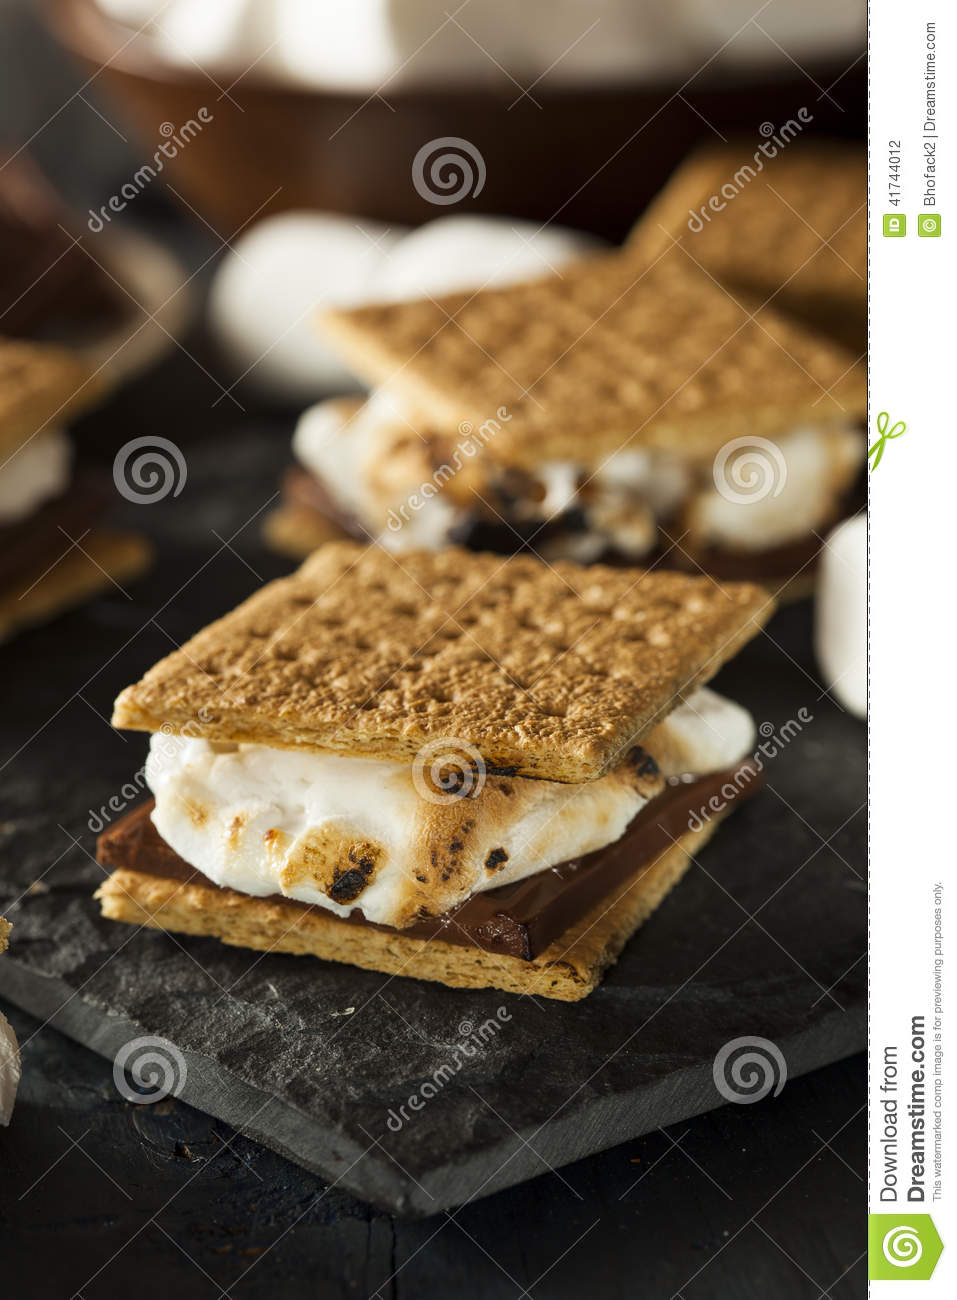 Homemade S'mores with Marshmallows Chocolate and Graham Crackers.